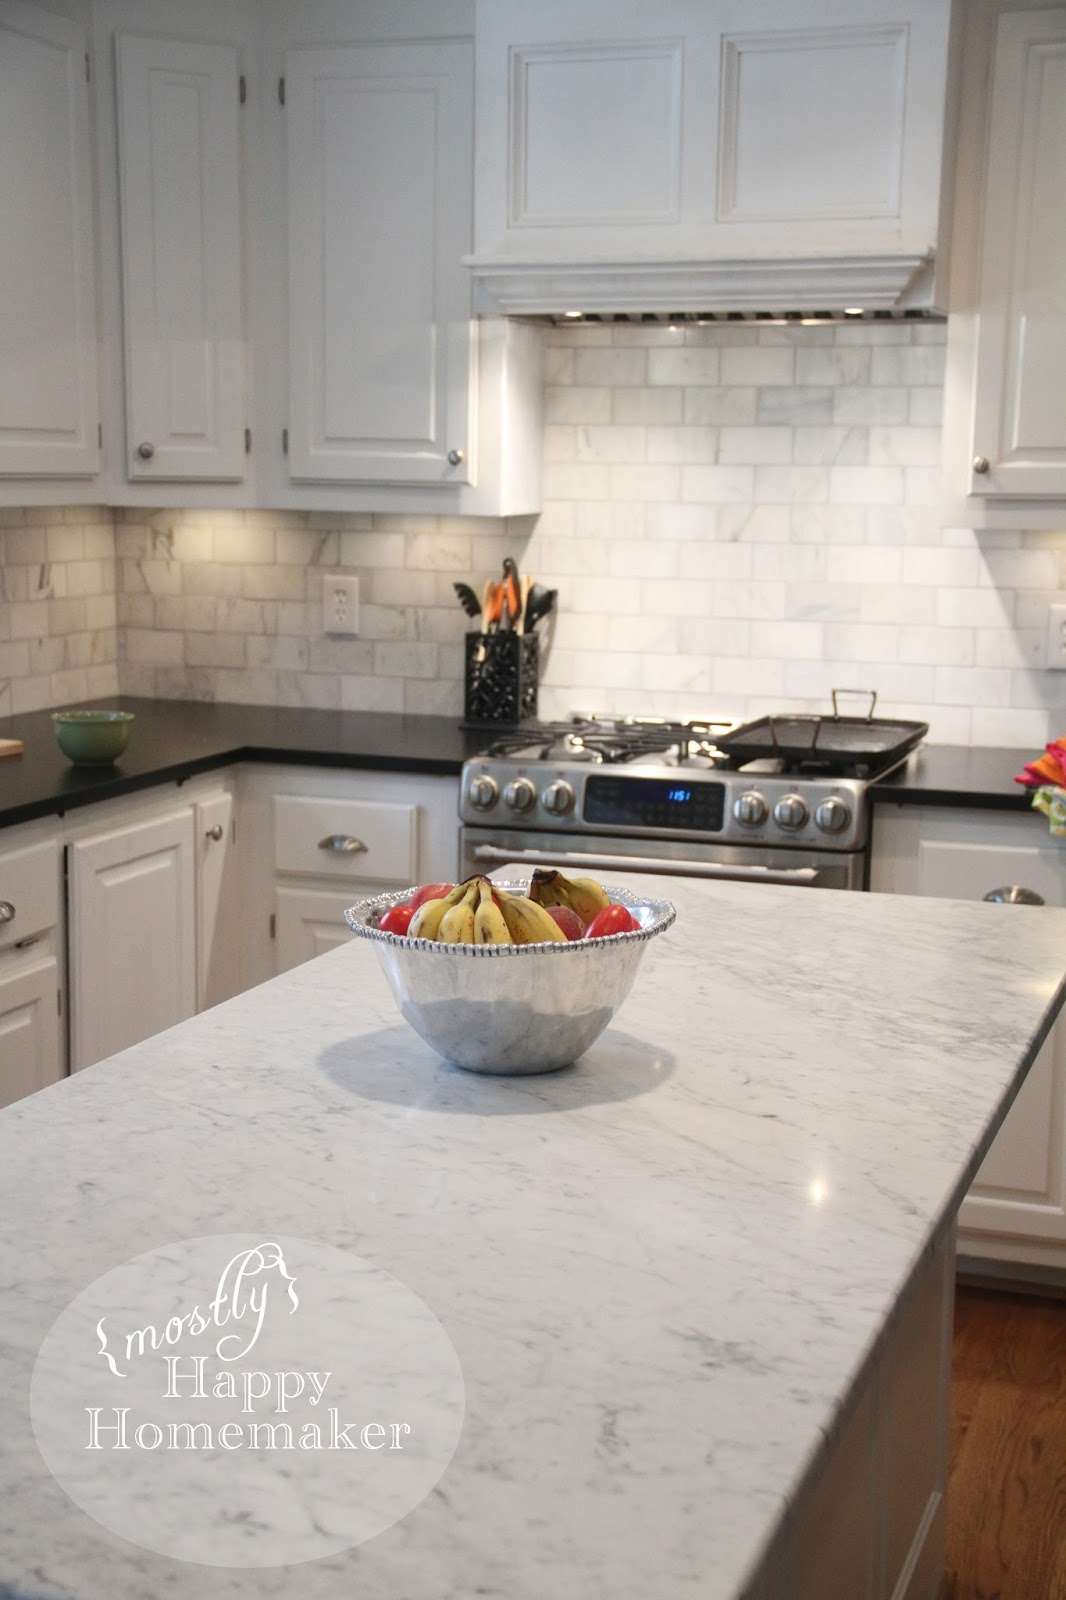 Mostly) Happy Homemaker: White Marble Countertop